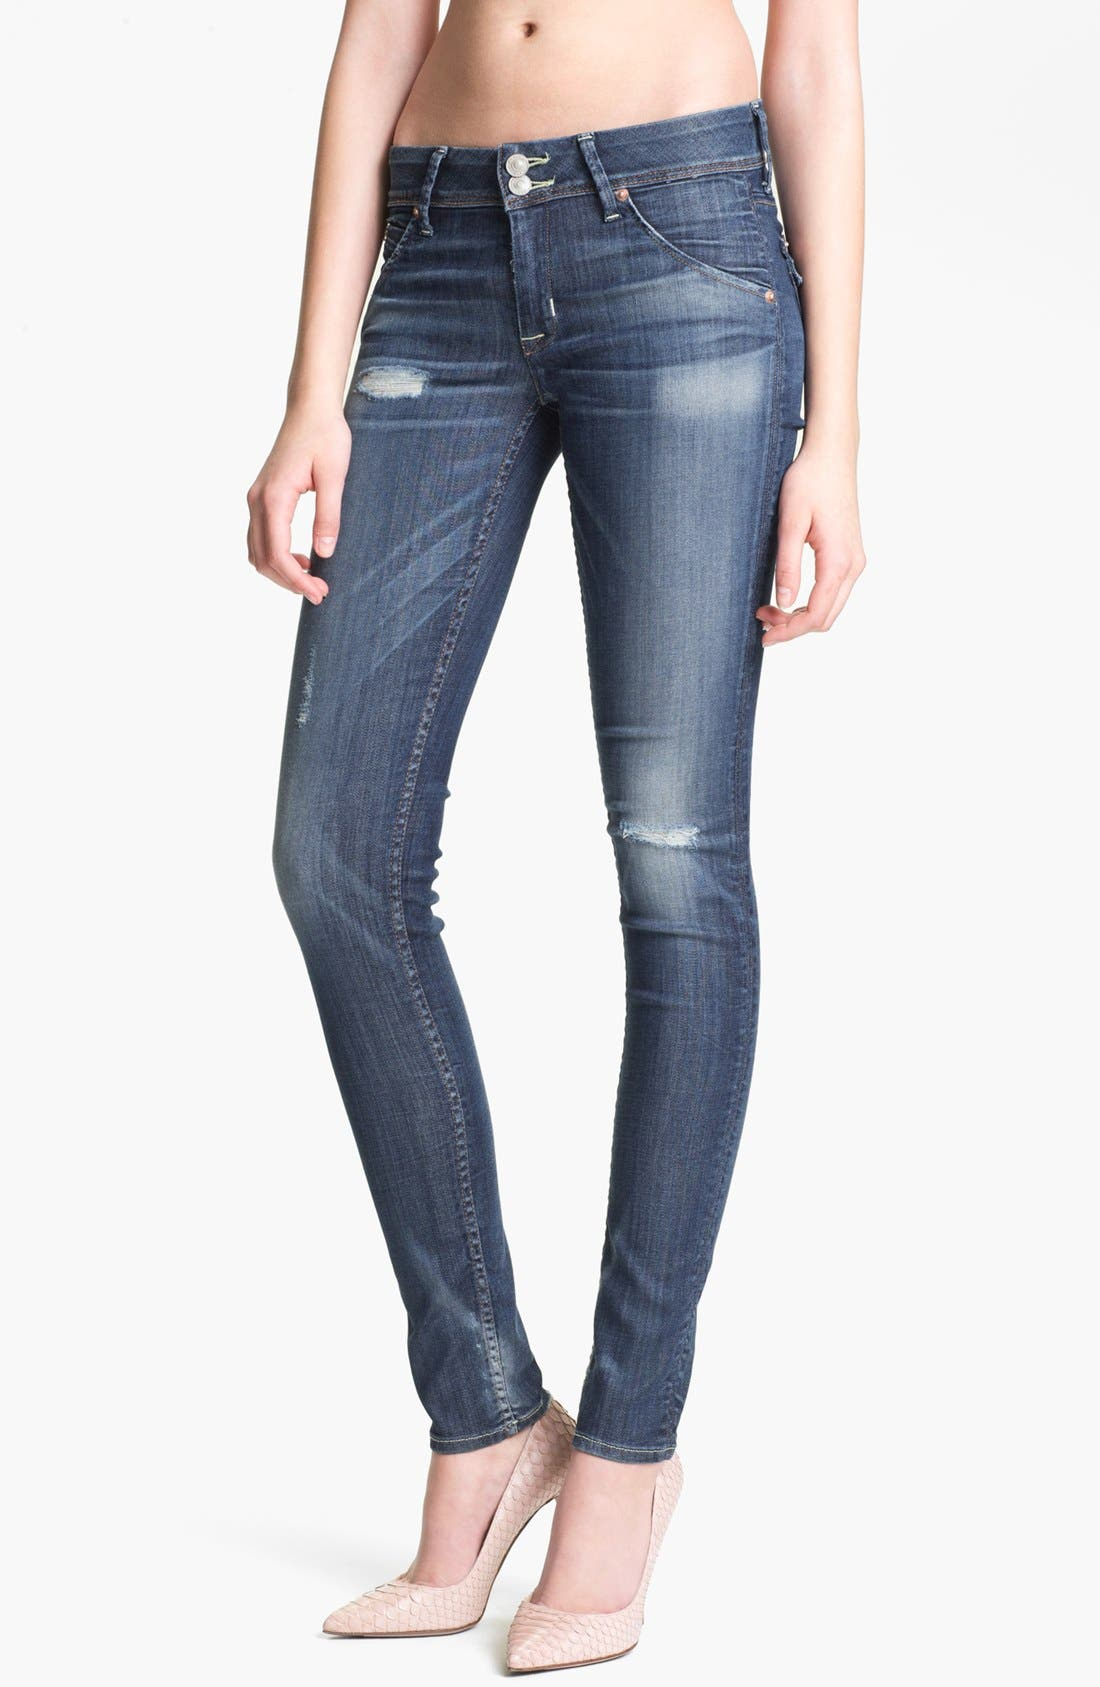 Alternate Image 1 Selected - Hudson Jeans 'Collin' Distressed Skinny Stretch Jeans (Youth Vintage)